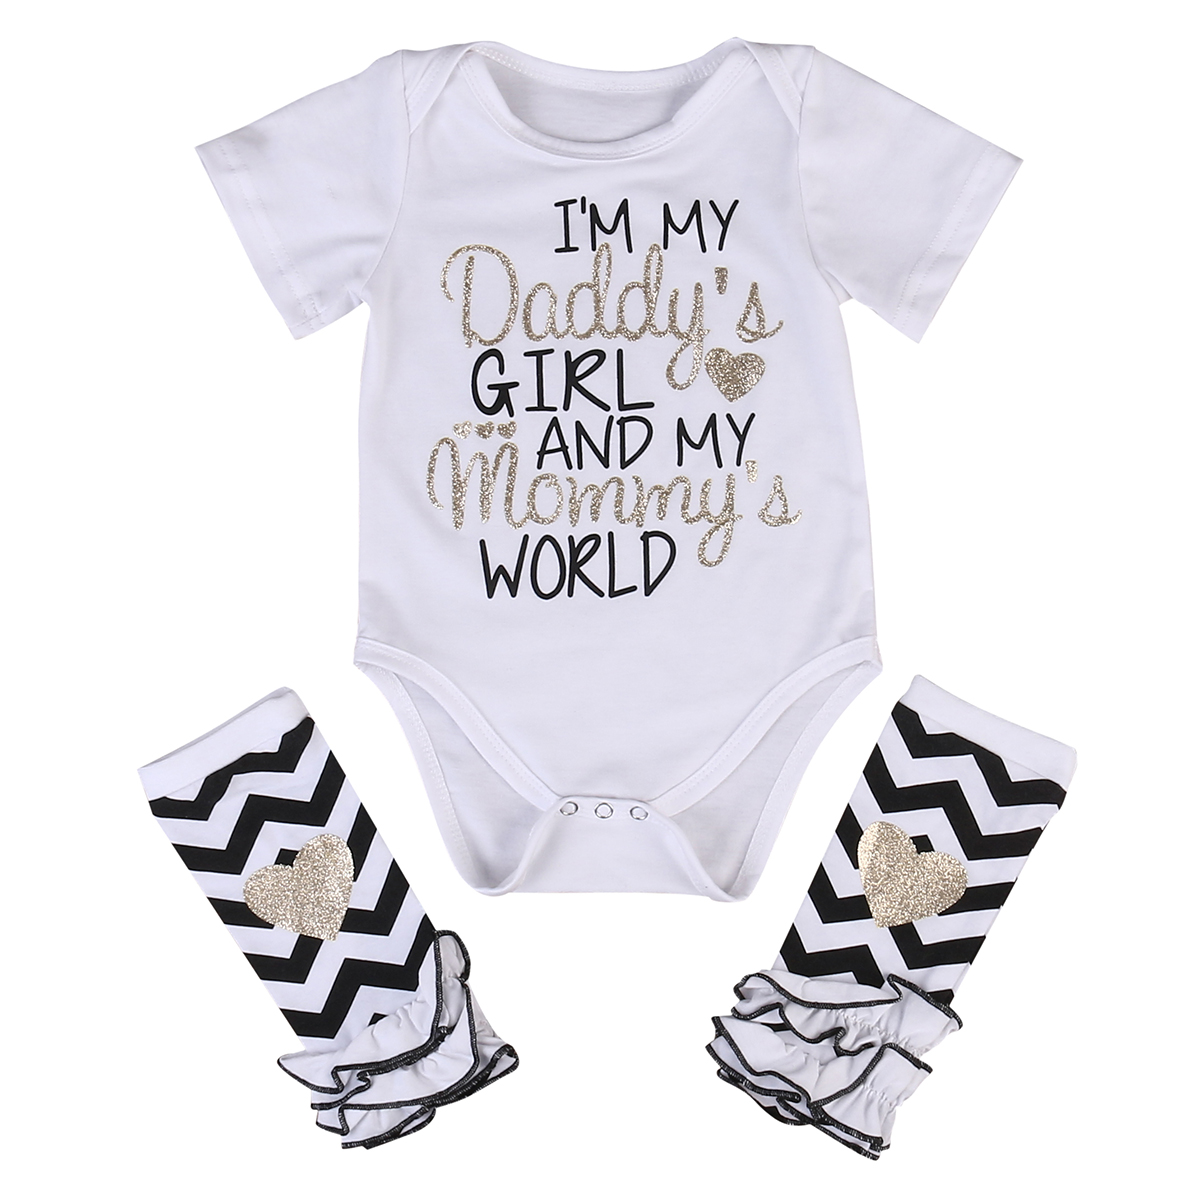 2017 Cute Newborn Baby Girl Clothes Set 0-18M Letter Printed Baby Romper Bodysuit +Leg Warmer 2PCS Outfits Kids Clothing Set cute newborn infant baby girl clothes set girls romper letter printed bodysuit floral tutu skirted bloomers short outfit sunsuit